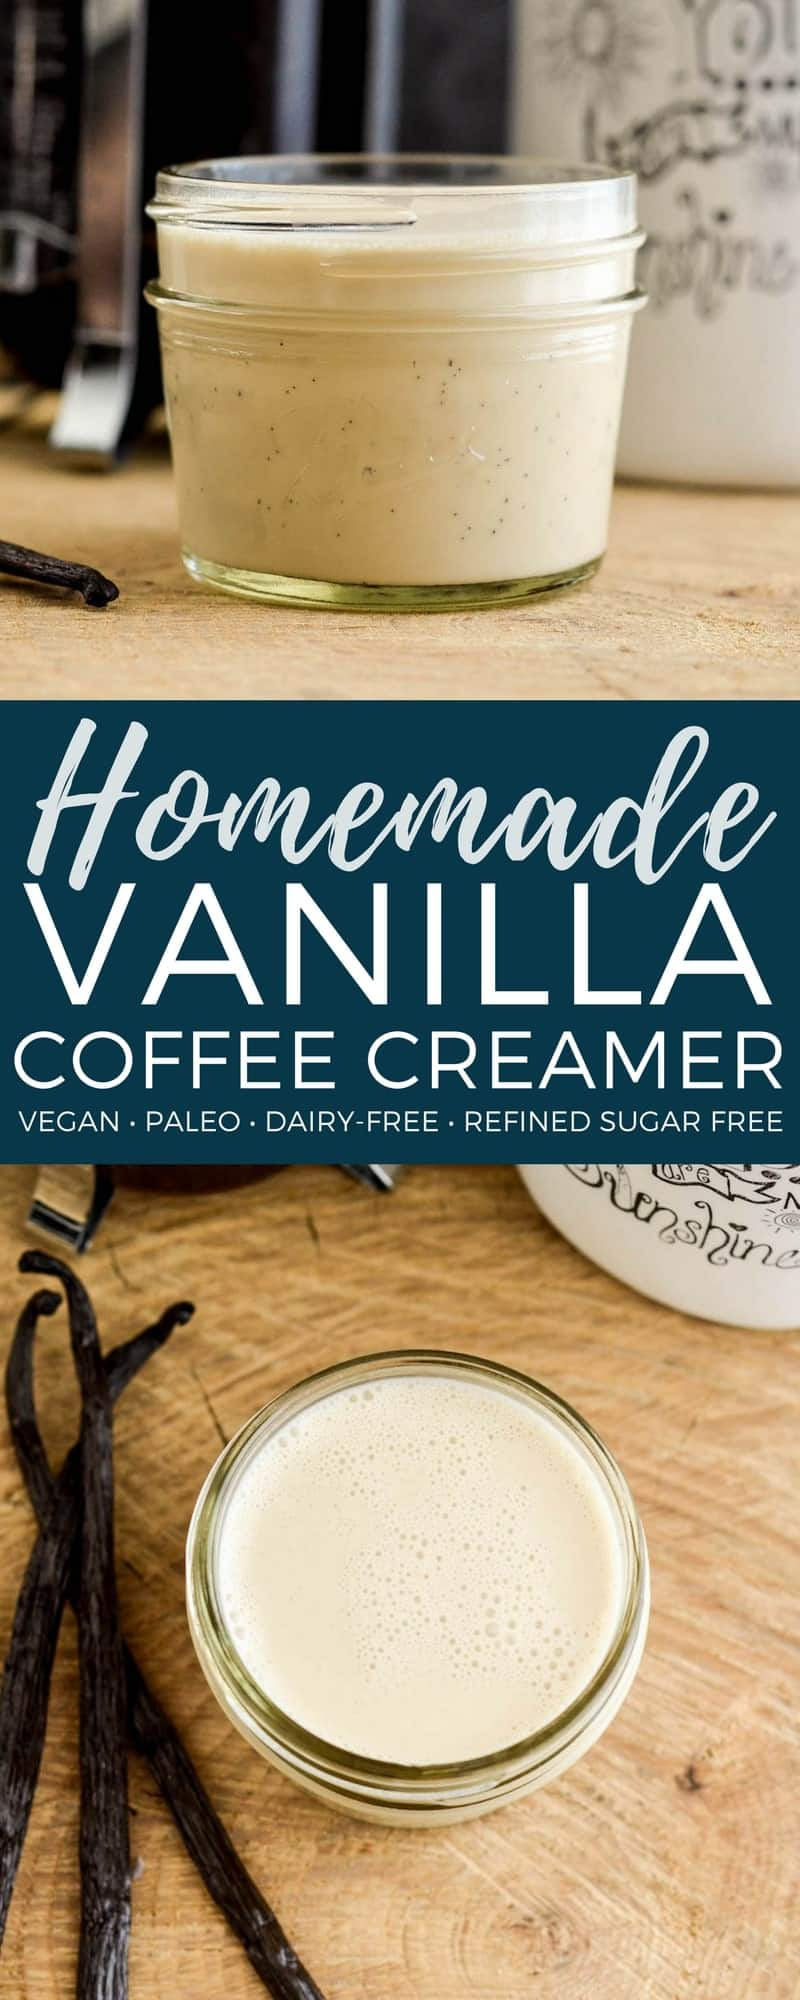 Homemade Paleo Vanilla Coffee Creamer! A 4 ingredient, easy recipe that's SO MUCh healthier than store-bought creamers! Dairy-free, refined-sugar free, paleo, and vegan! #homemade #creamer #dairyfree #vegan #paleo #vanilla #breakfast #coffee